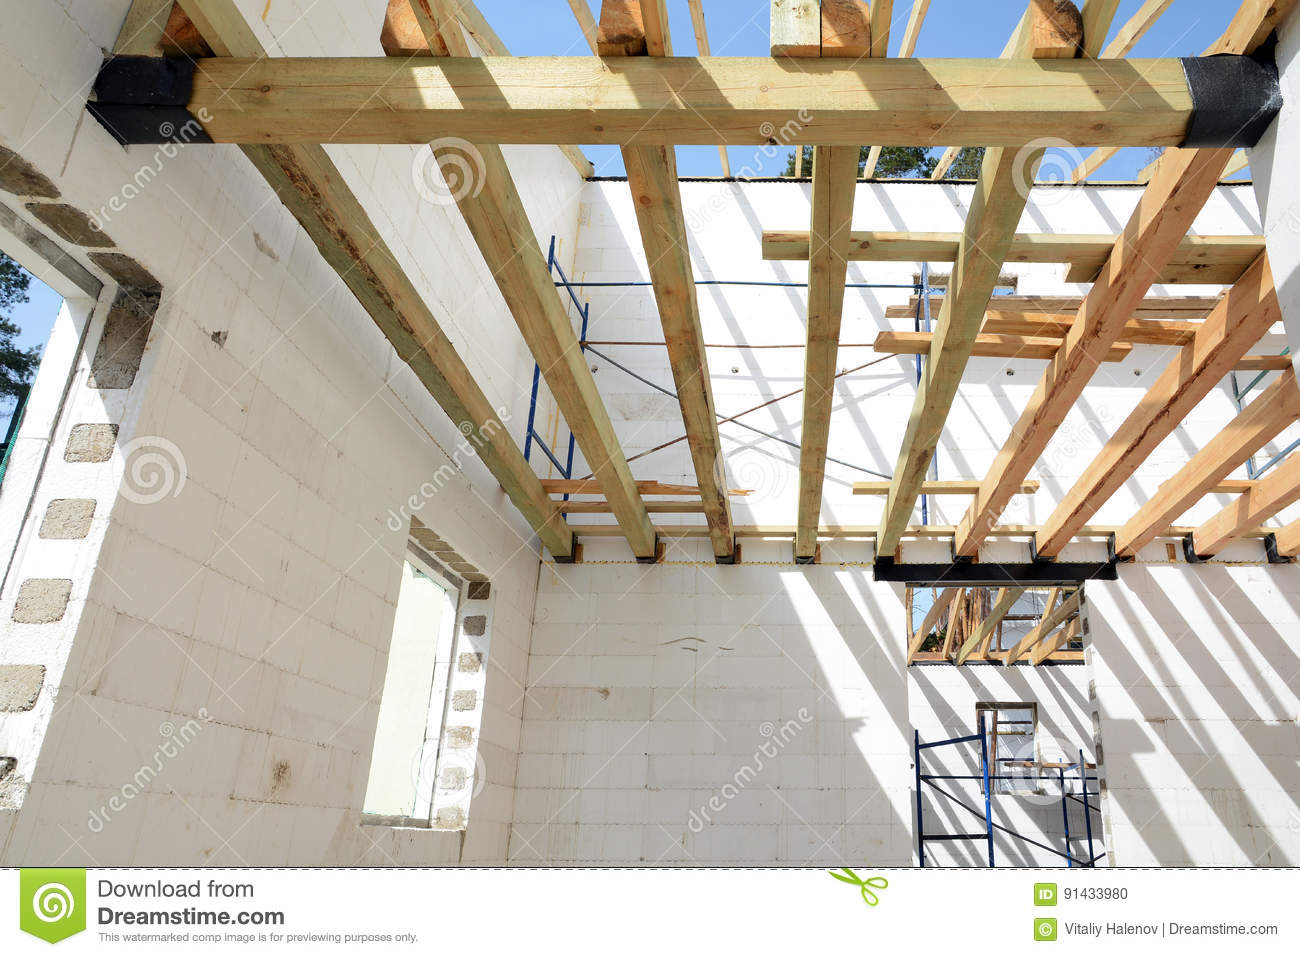 The Wooden Structure Of The Building  Installation Of Wooden Beams